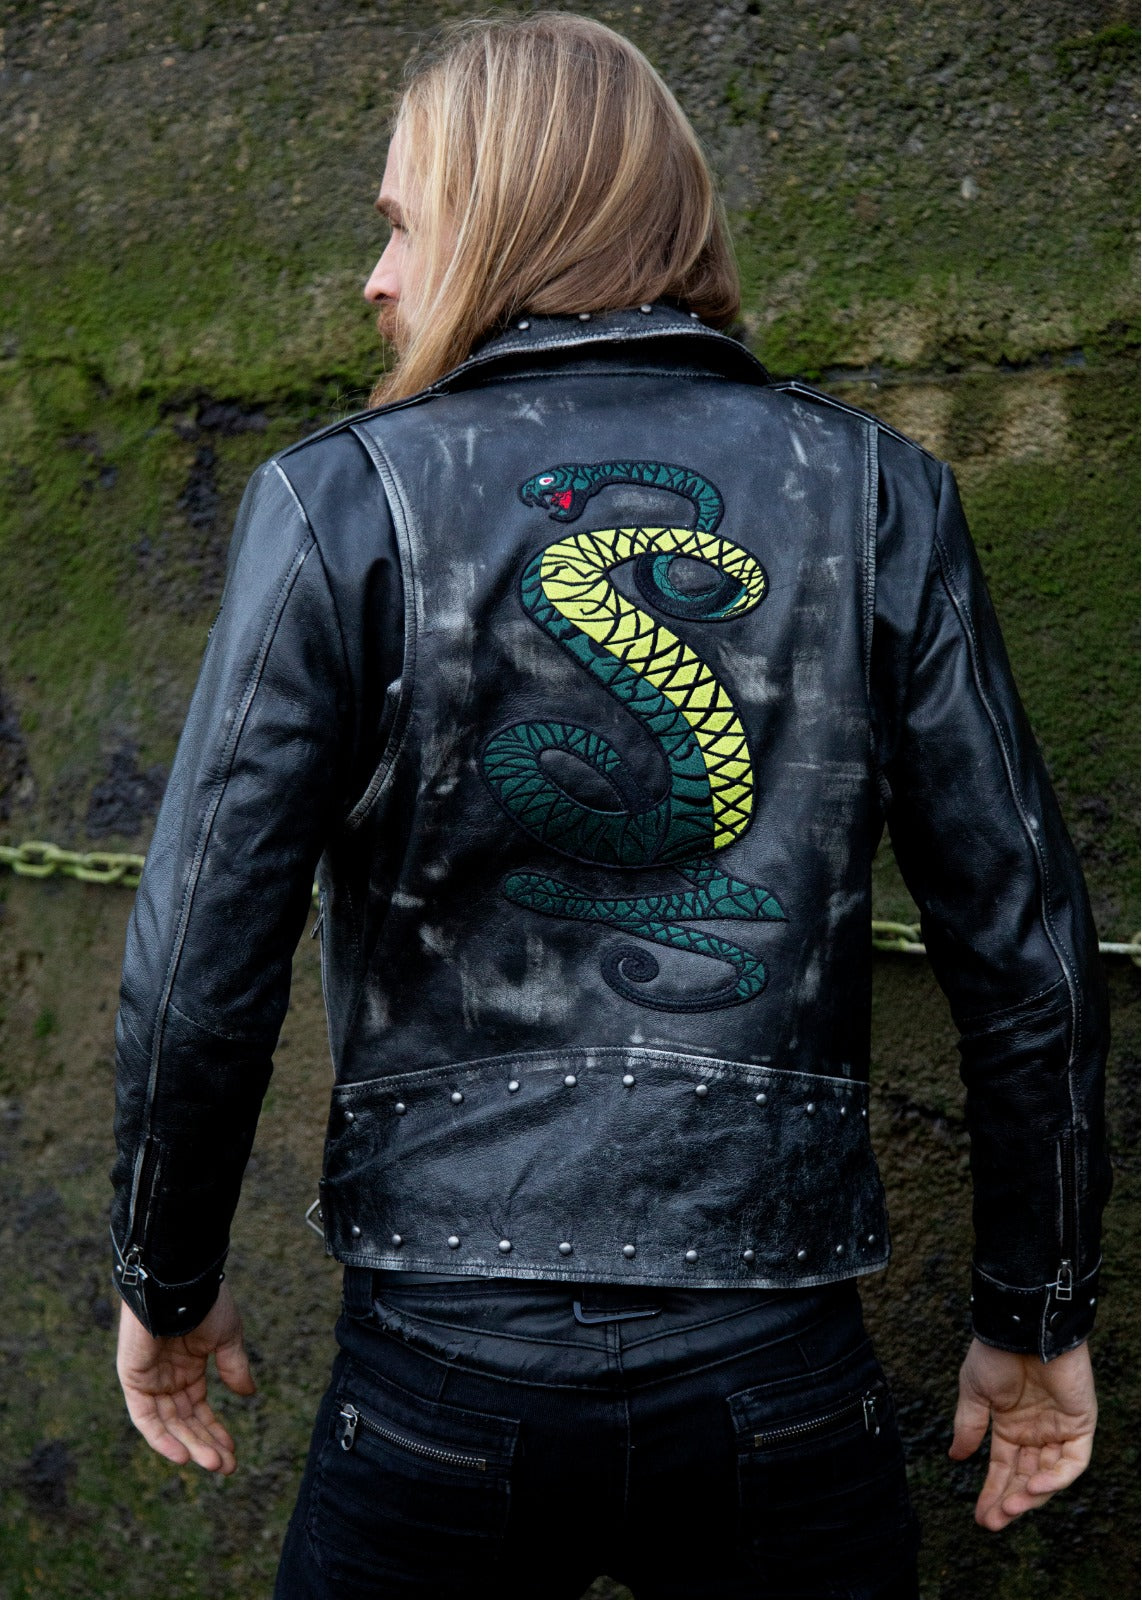 Buy Tunnel Snakes Leather Jacket Biker Fallout 4 Location